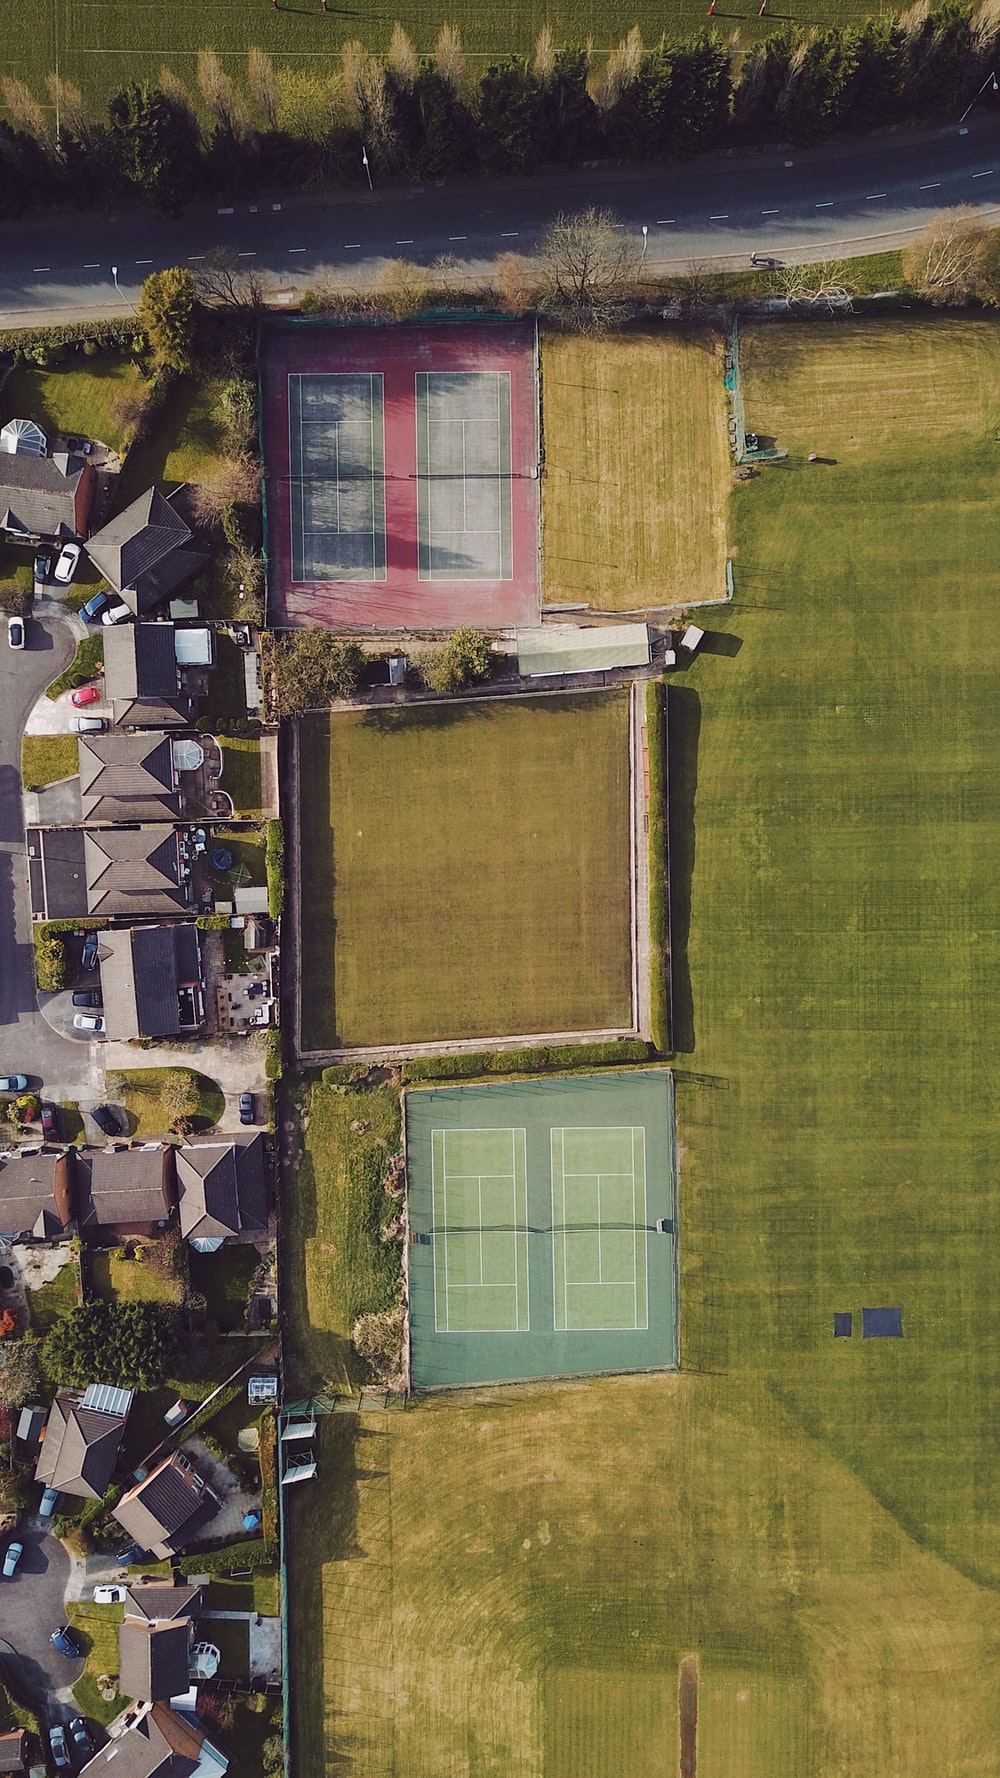 aerial view of green grass field